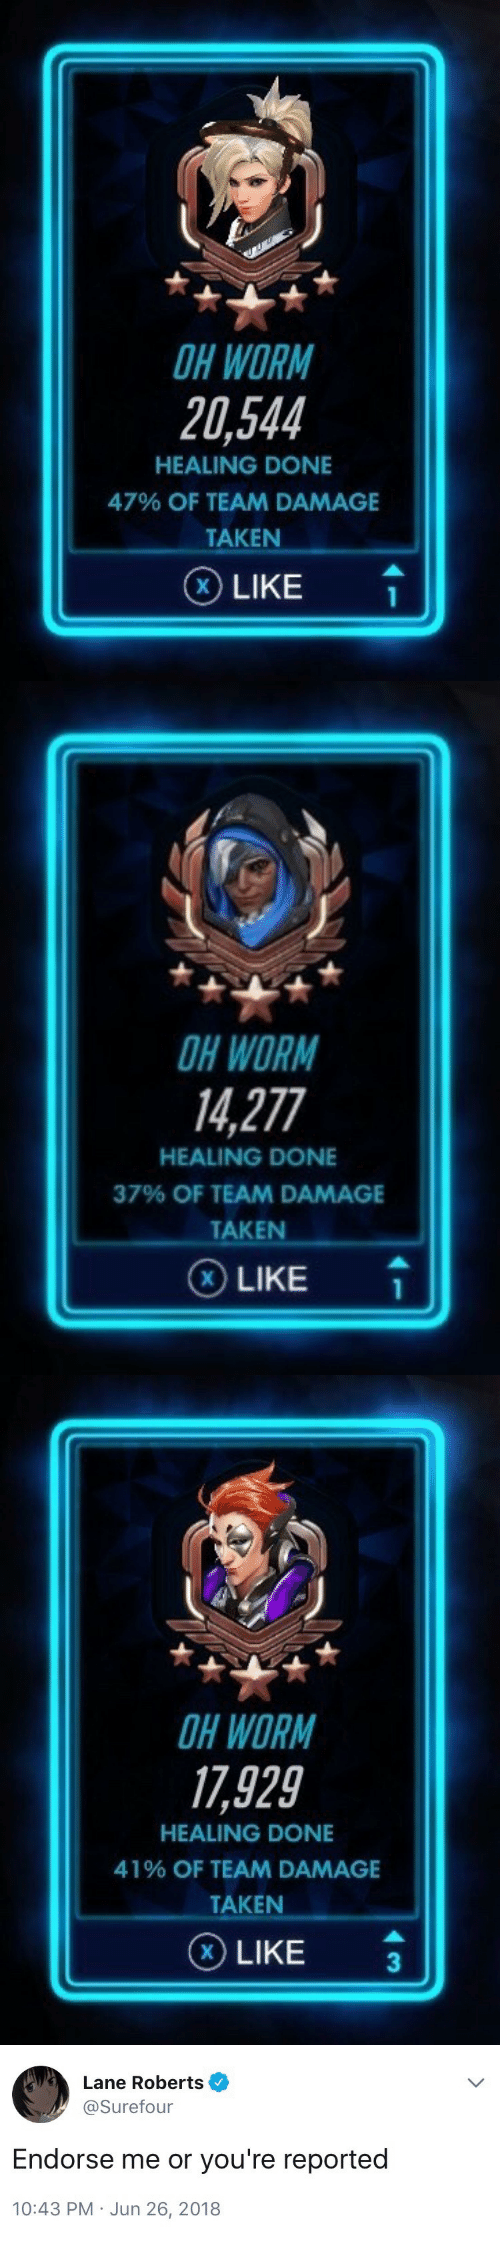 endorse: H WORM  20,544  HEALING DONE  47% OF TEAM DAMAGE  TAKEN  ⓧ LIKE   H WORM  14,277  HEALING DONE  37% OF TEAM DAMAGE  TAKEN  LIKE   H WORM  17,929  HEALING DONE  41% OF TEAM DAMAGE  TAKEN  ⓧ LIKE   Lane Roberts  @Surefour  Endorse me or you're reported  10:43 PM Jun 26, 2018